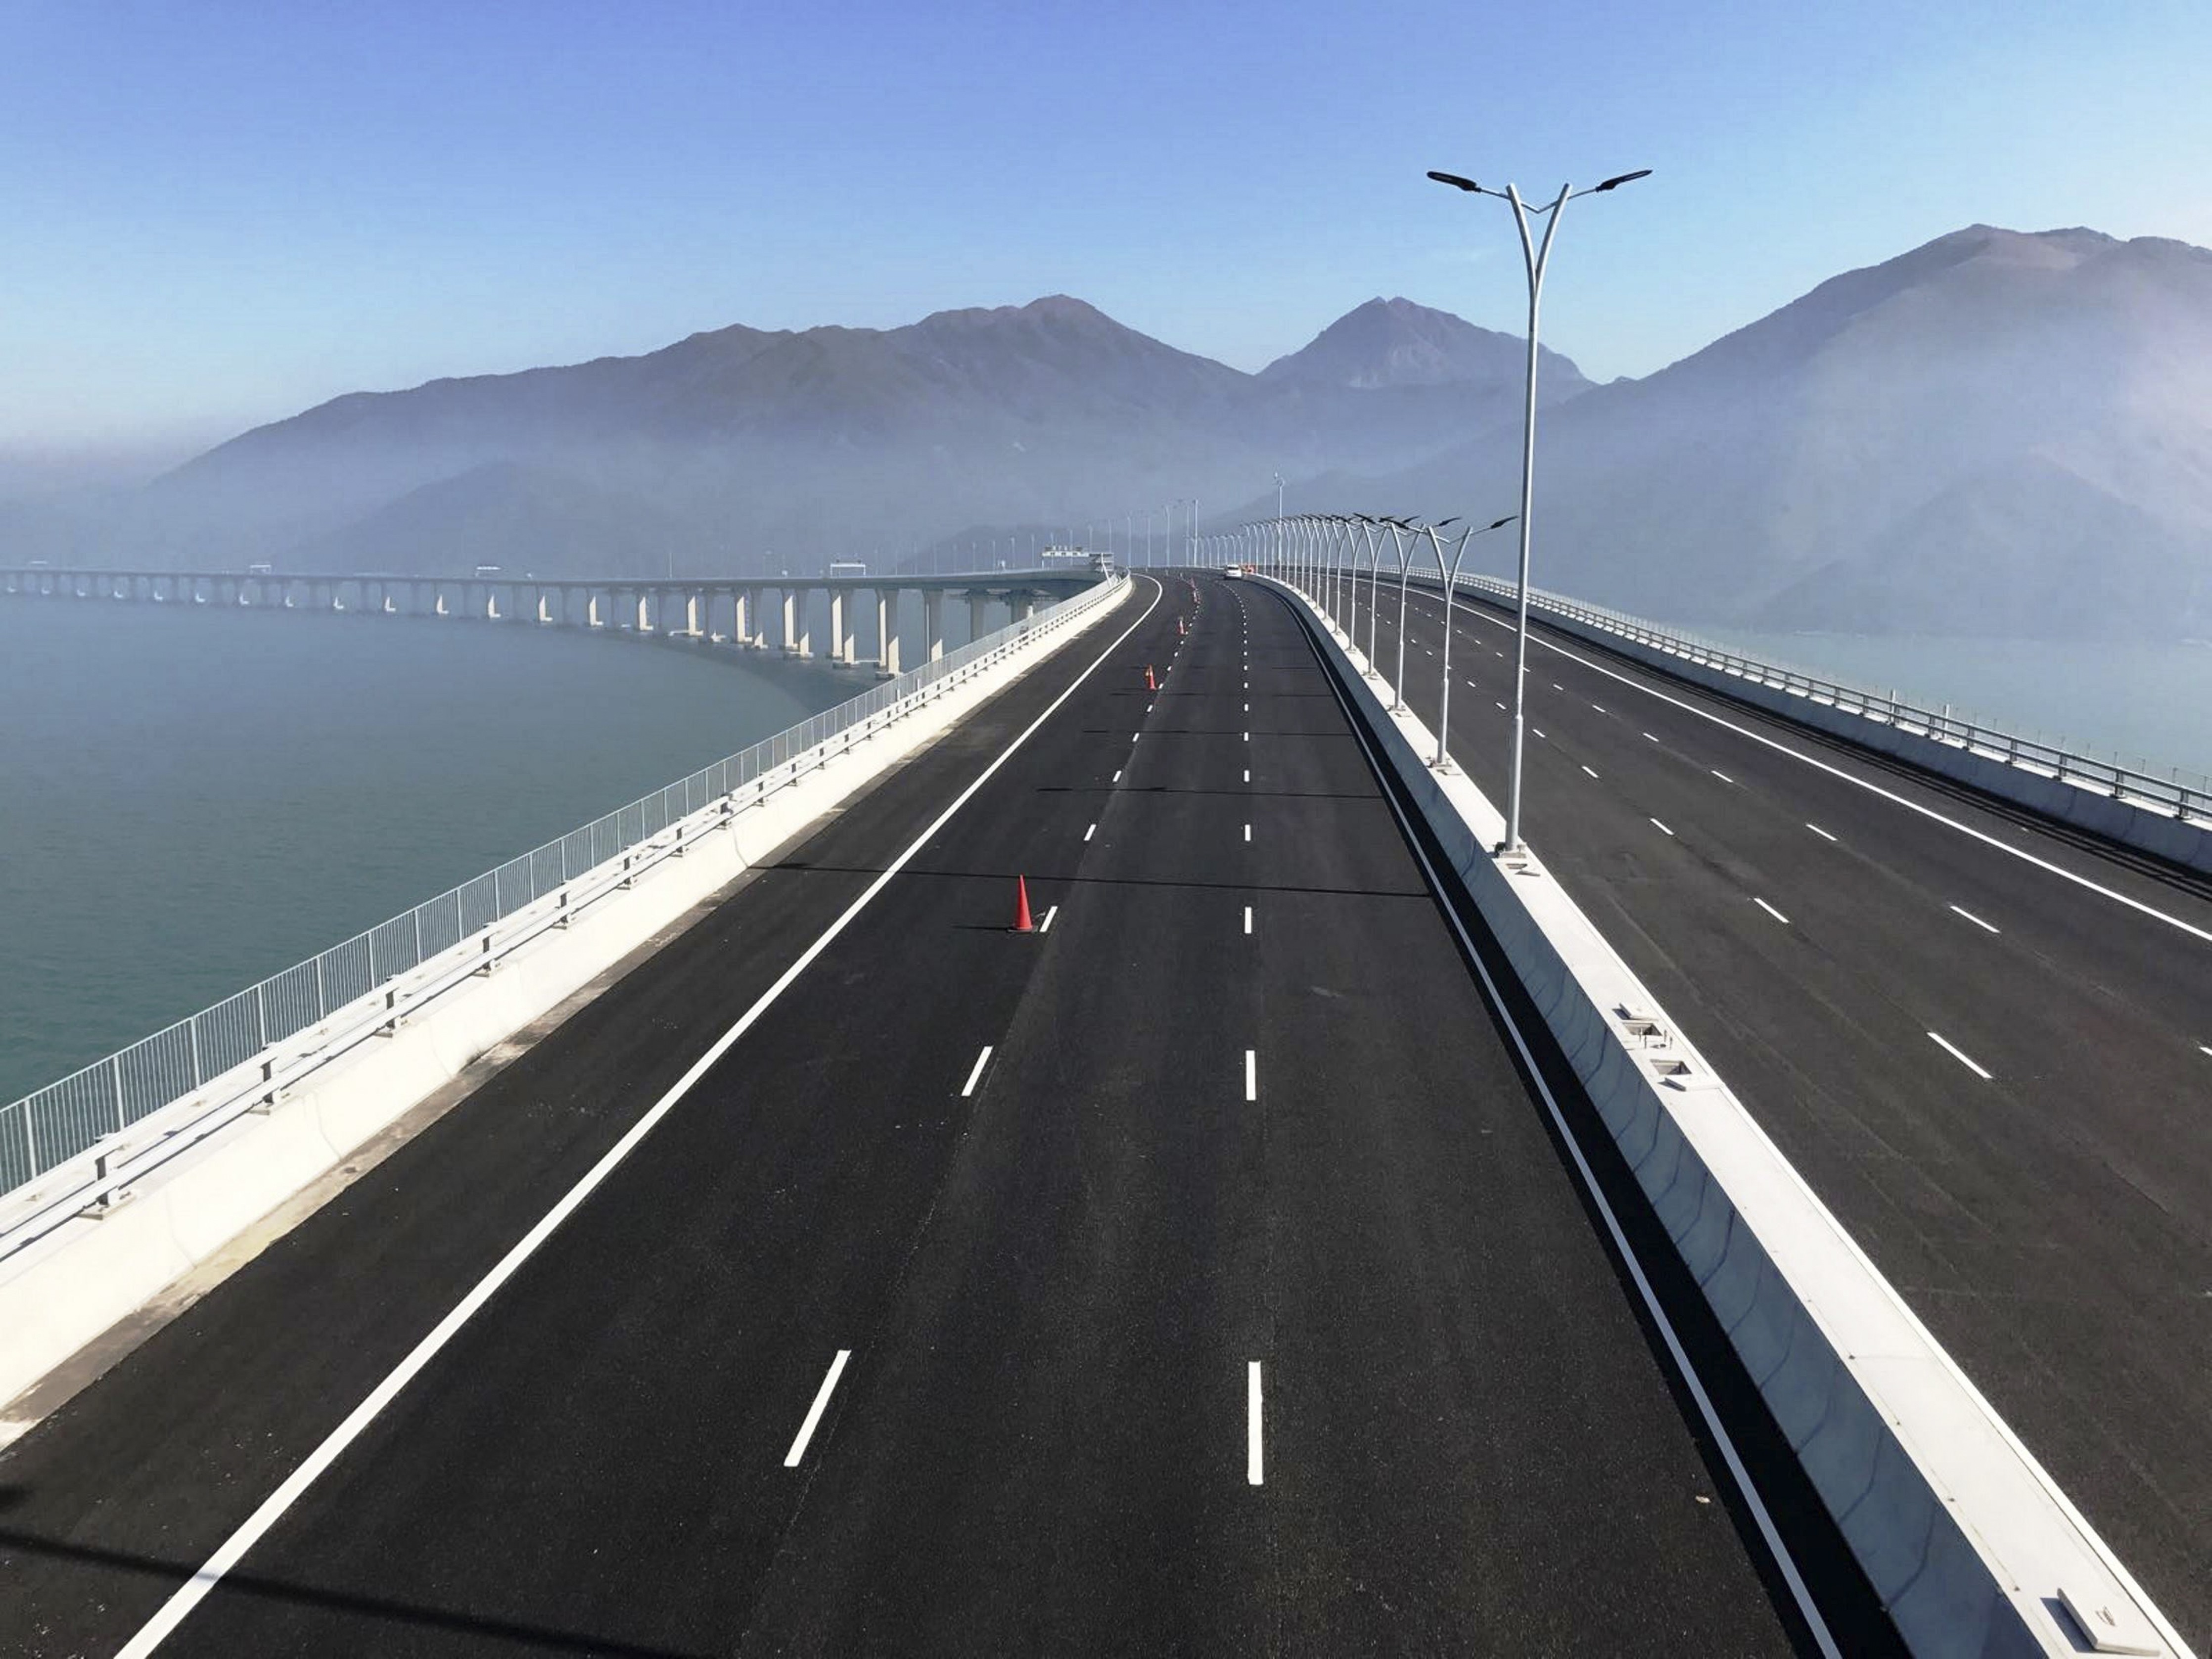 Popularity of Zhuhai bridge trips highlights gap between Hong Kong